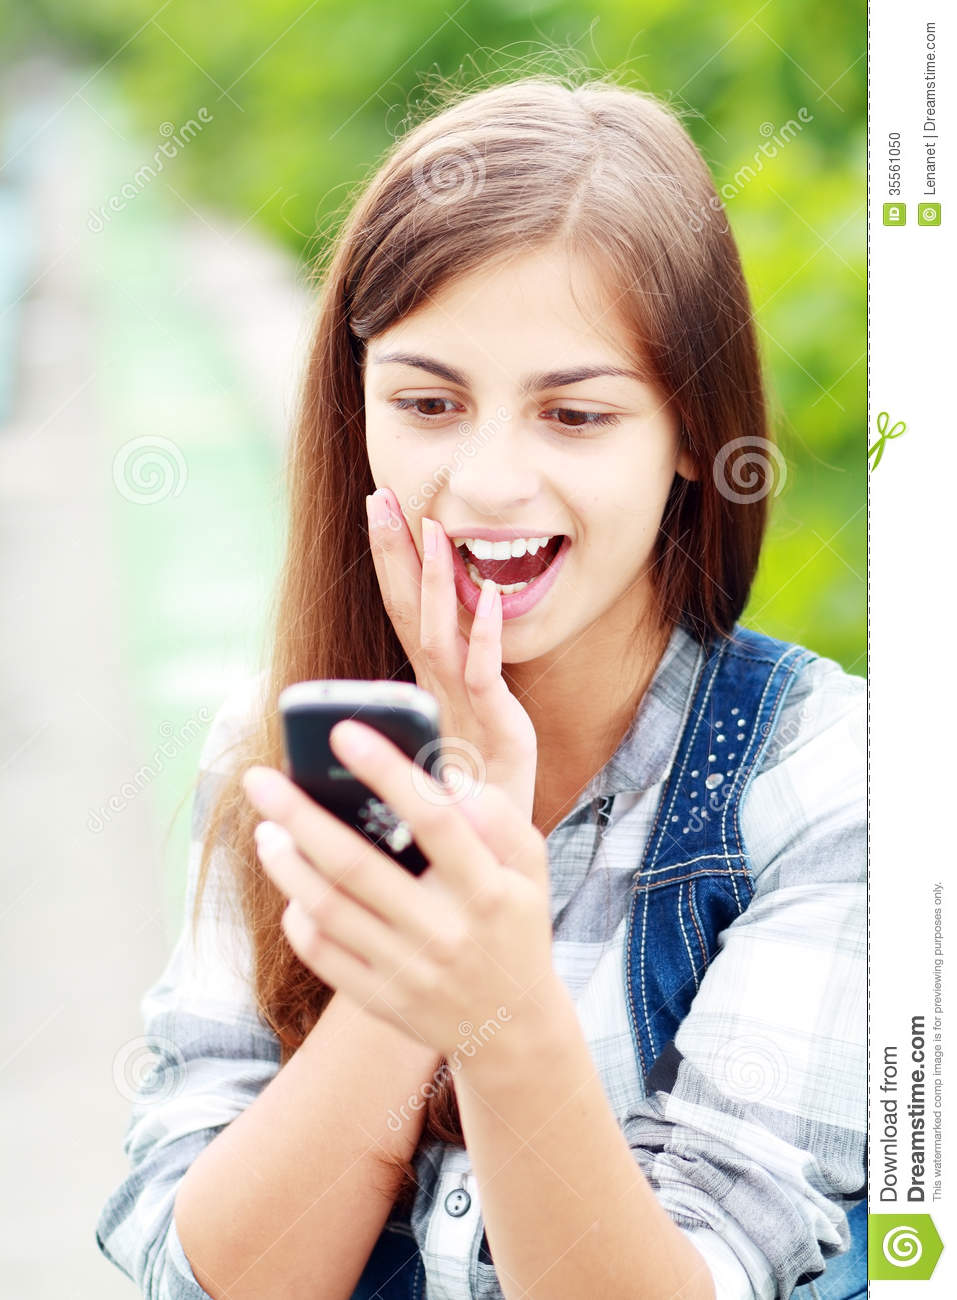 Anxcios Young Stock Photo Image Of Female, Network, Mouth -6317